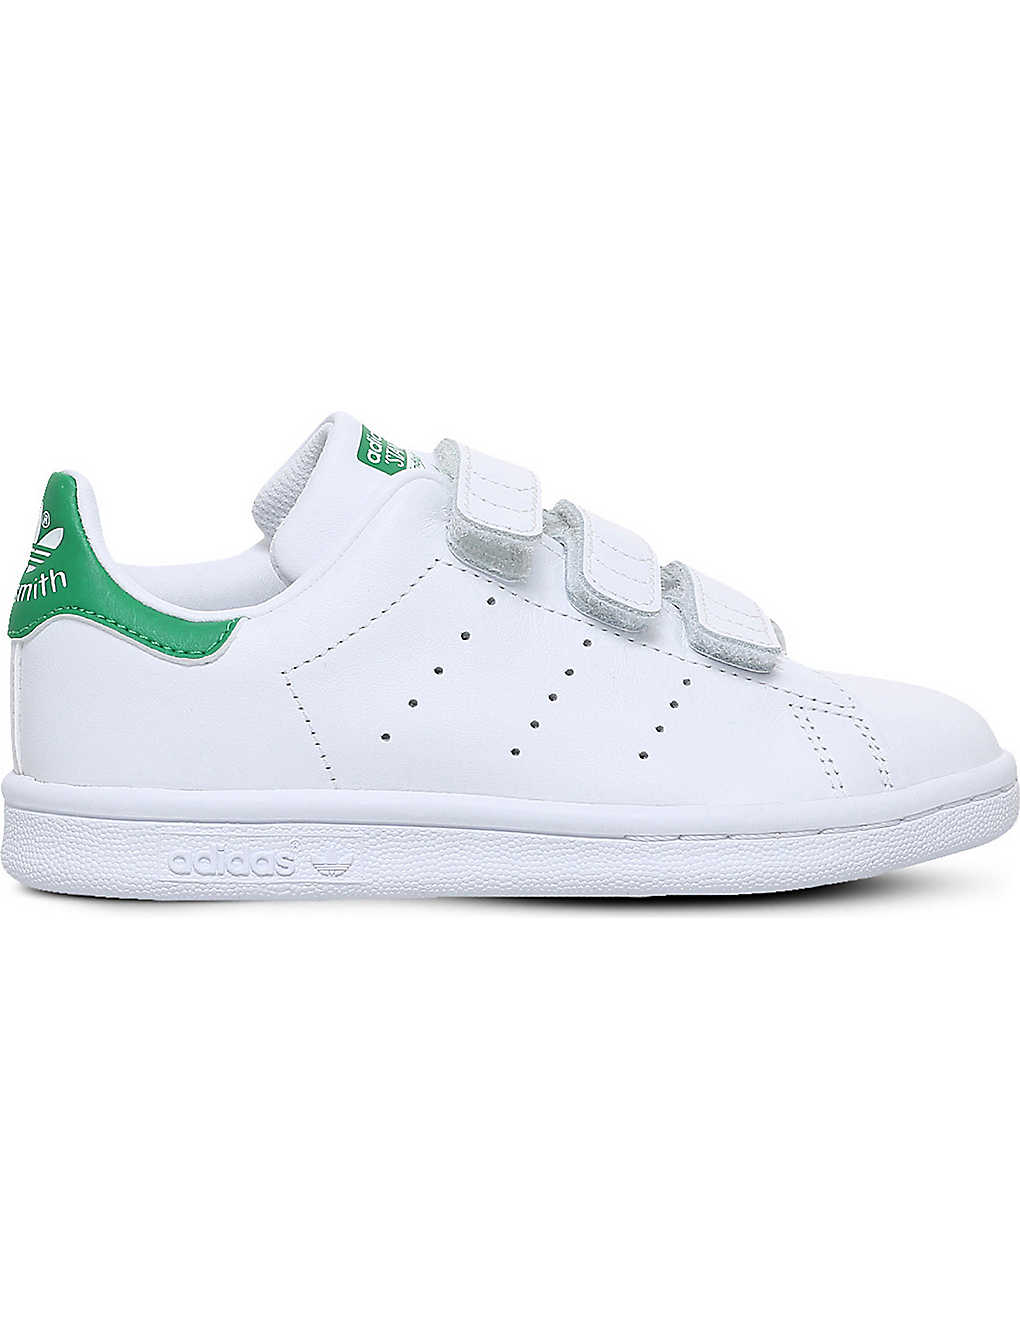 ADIDAS: Stan Smith leather trainers 4-9 years